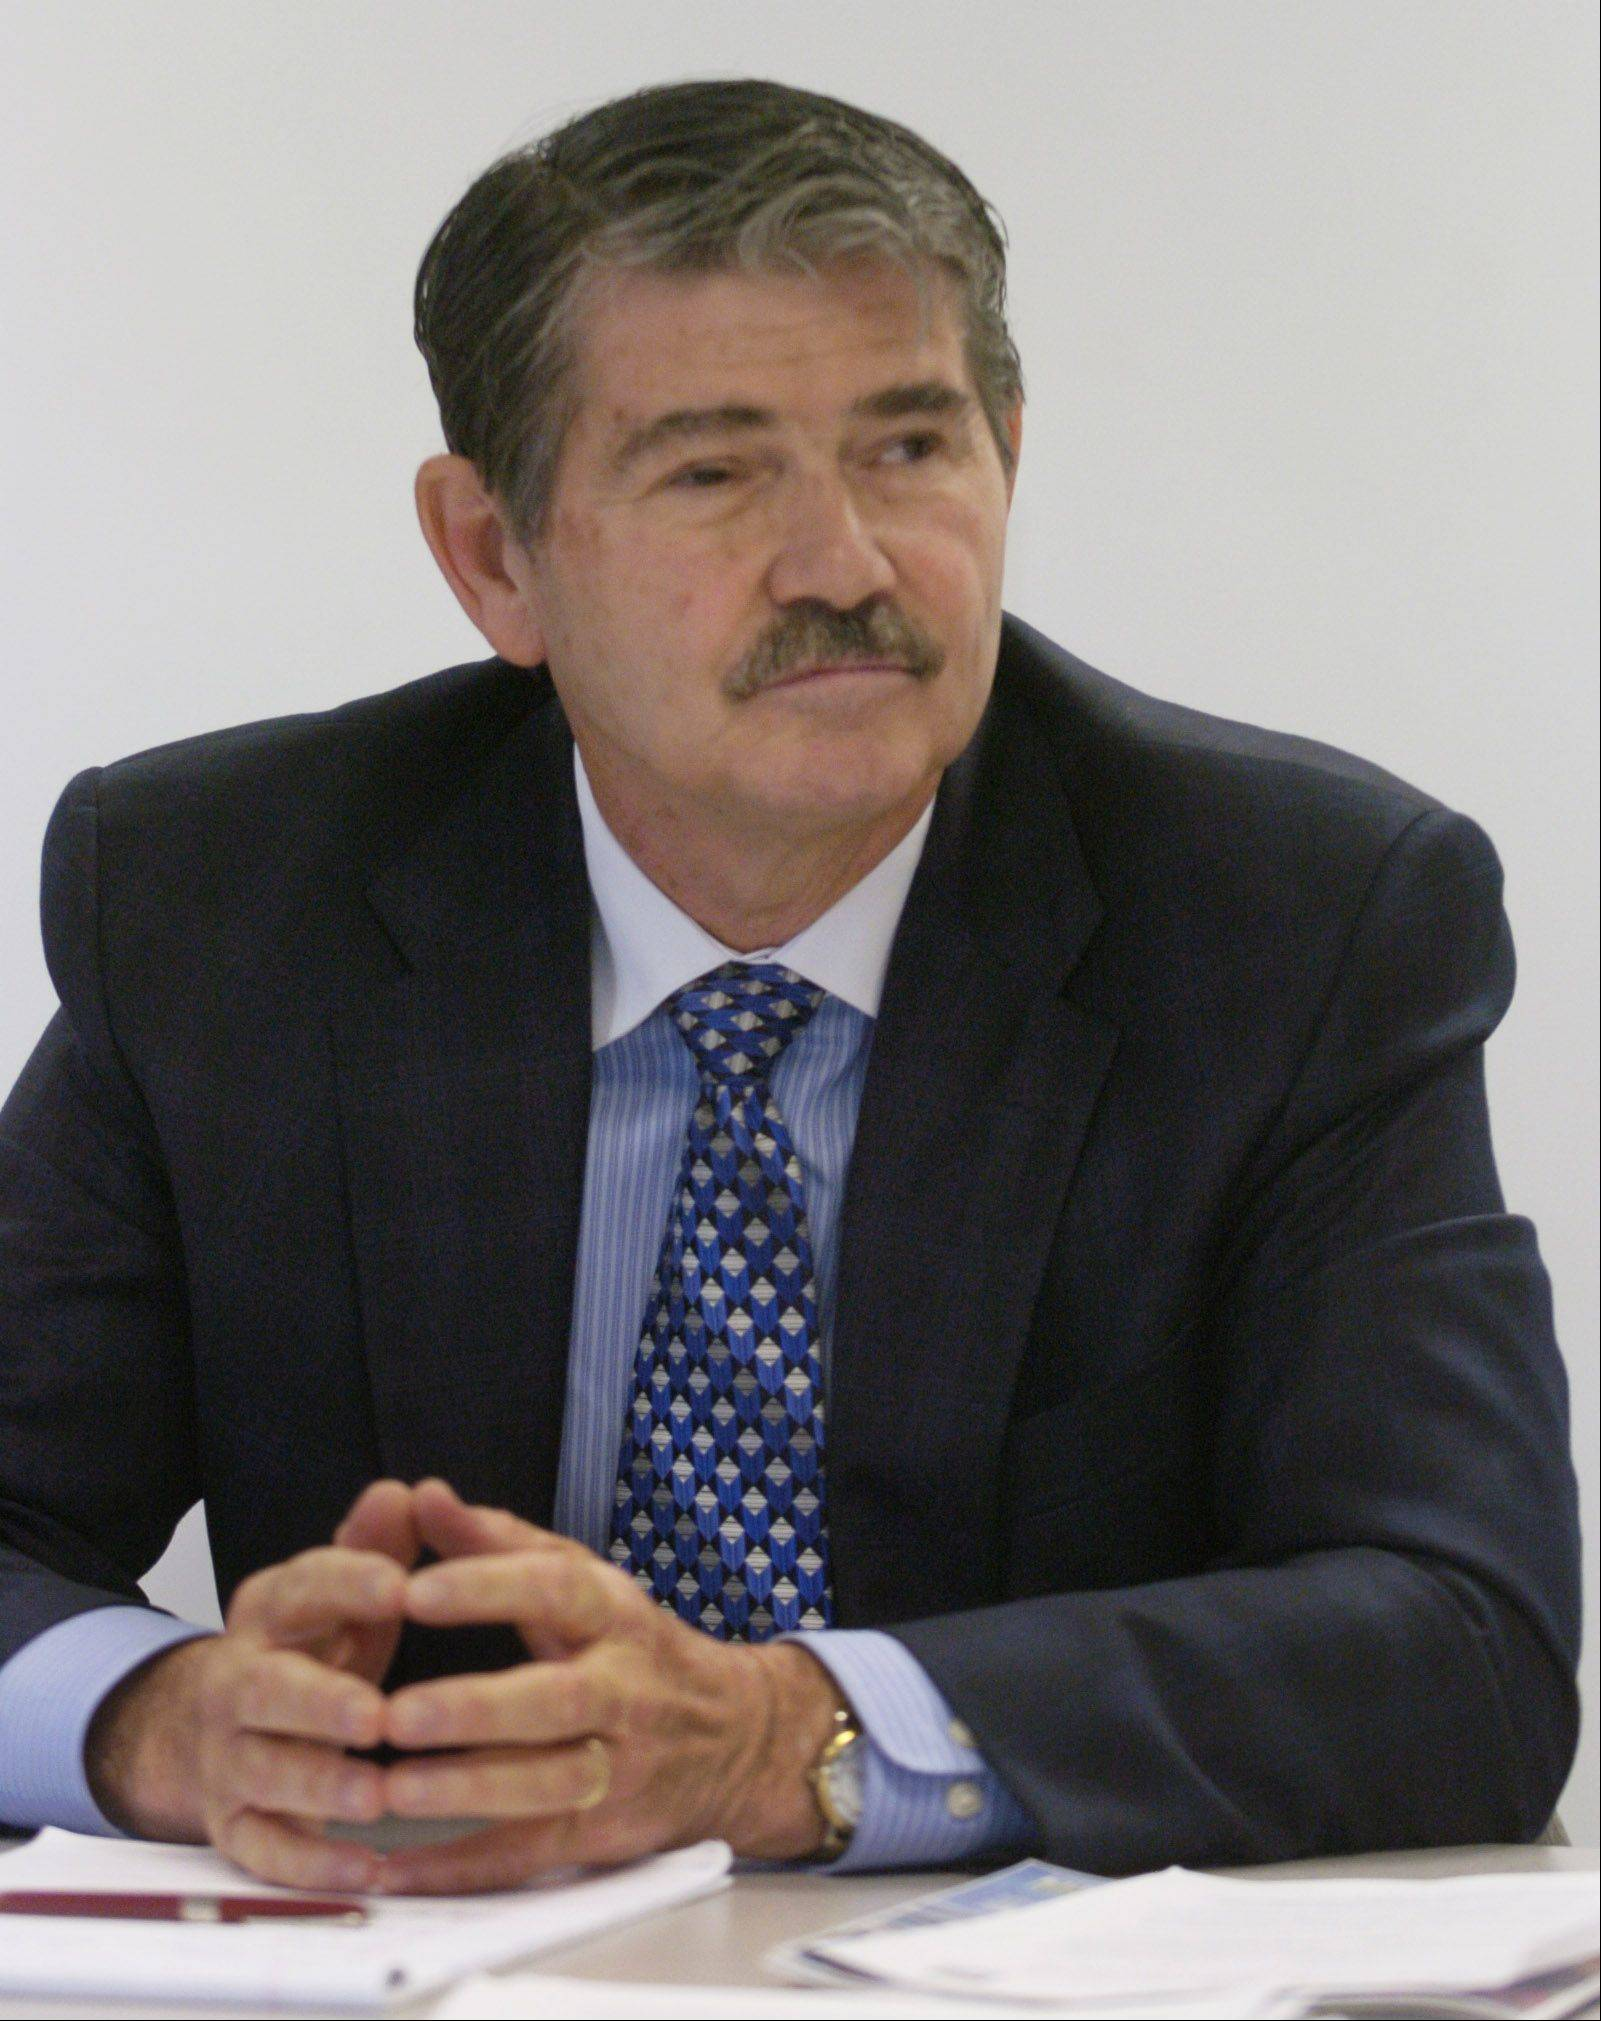 Cook County Clerk David Orr